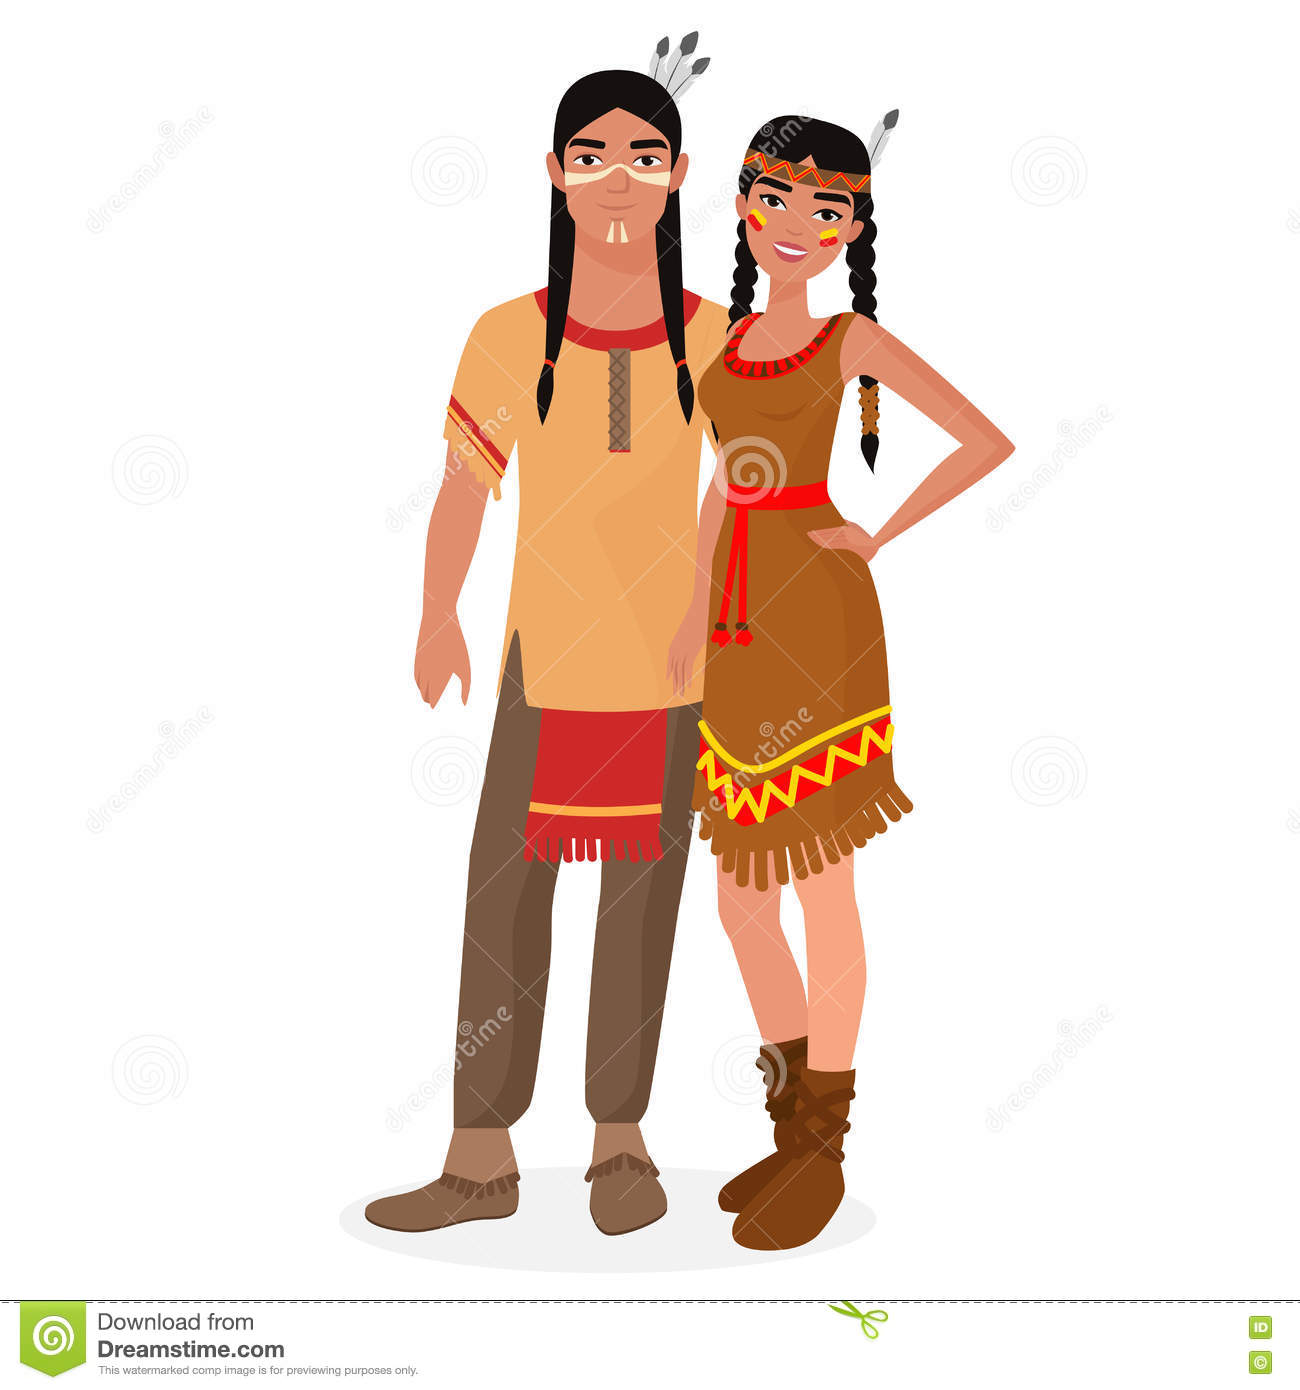 American Actress Leelee Sobieski moreover Royalty Free Stock Image Demographics Image6060916 further Stock Illustration Native American Indian Family American Indians Man Woman Couple Traditional National Clothes Image75620708 as well African Designer Skirts in addition Epic Phoenix Tattoo On Chest Photo 1. on american traditional design